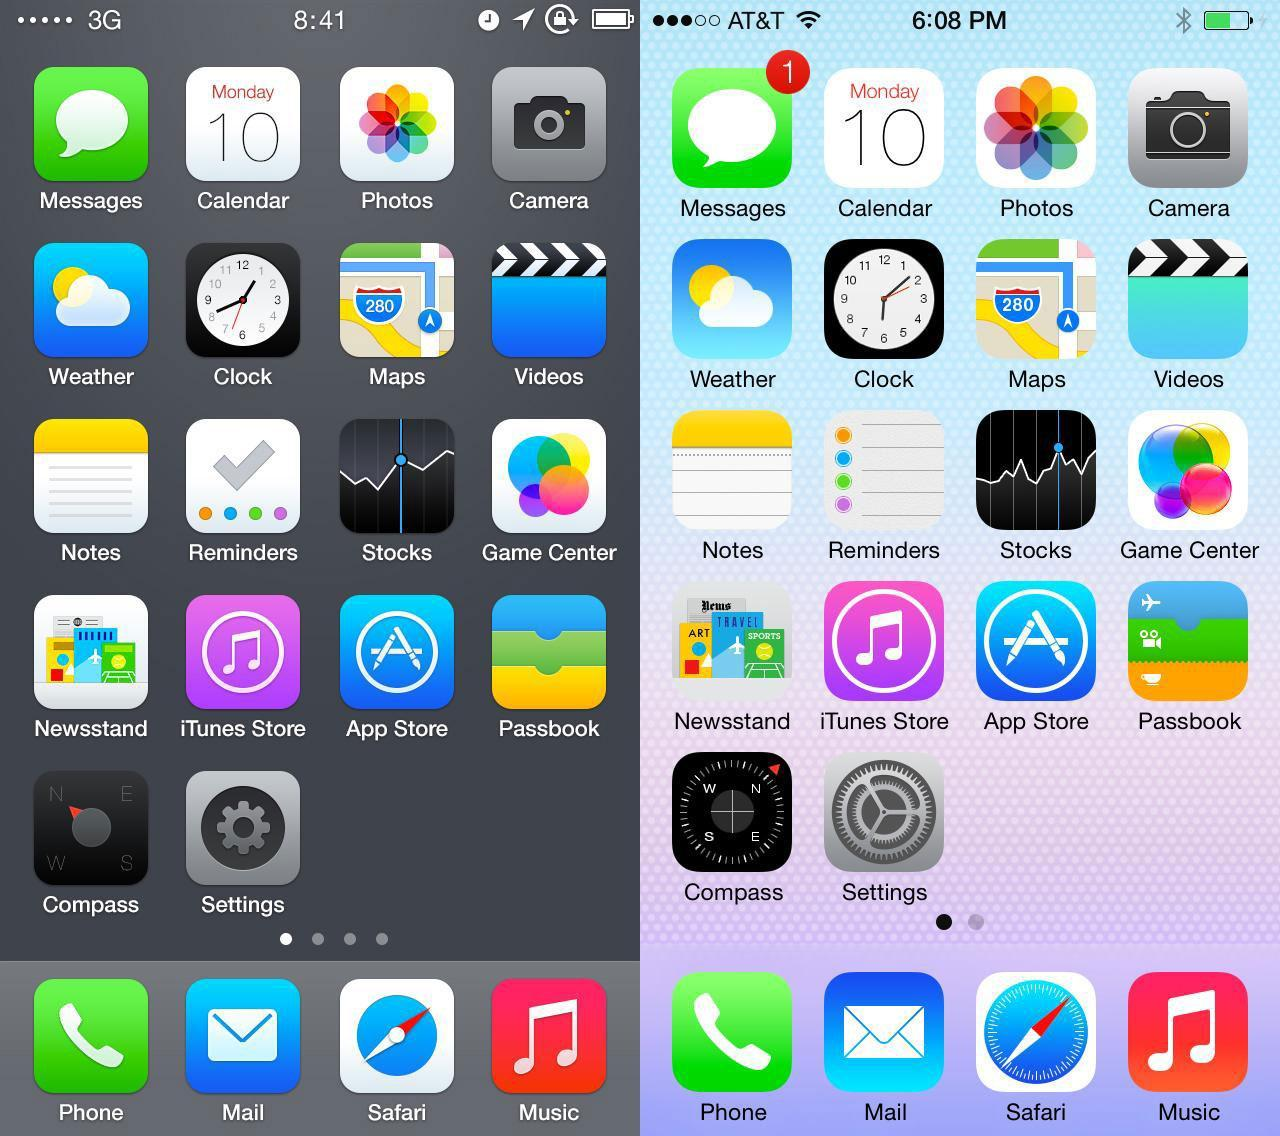 The preivous iOS compared to the new iOS update.